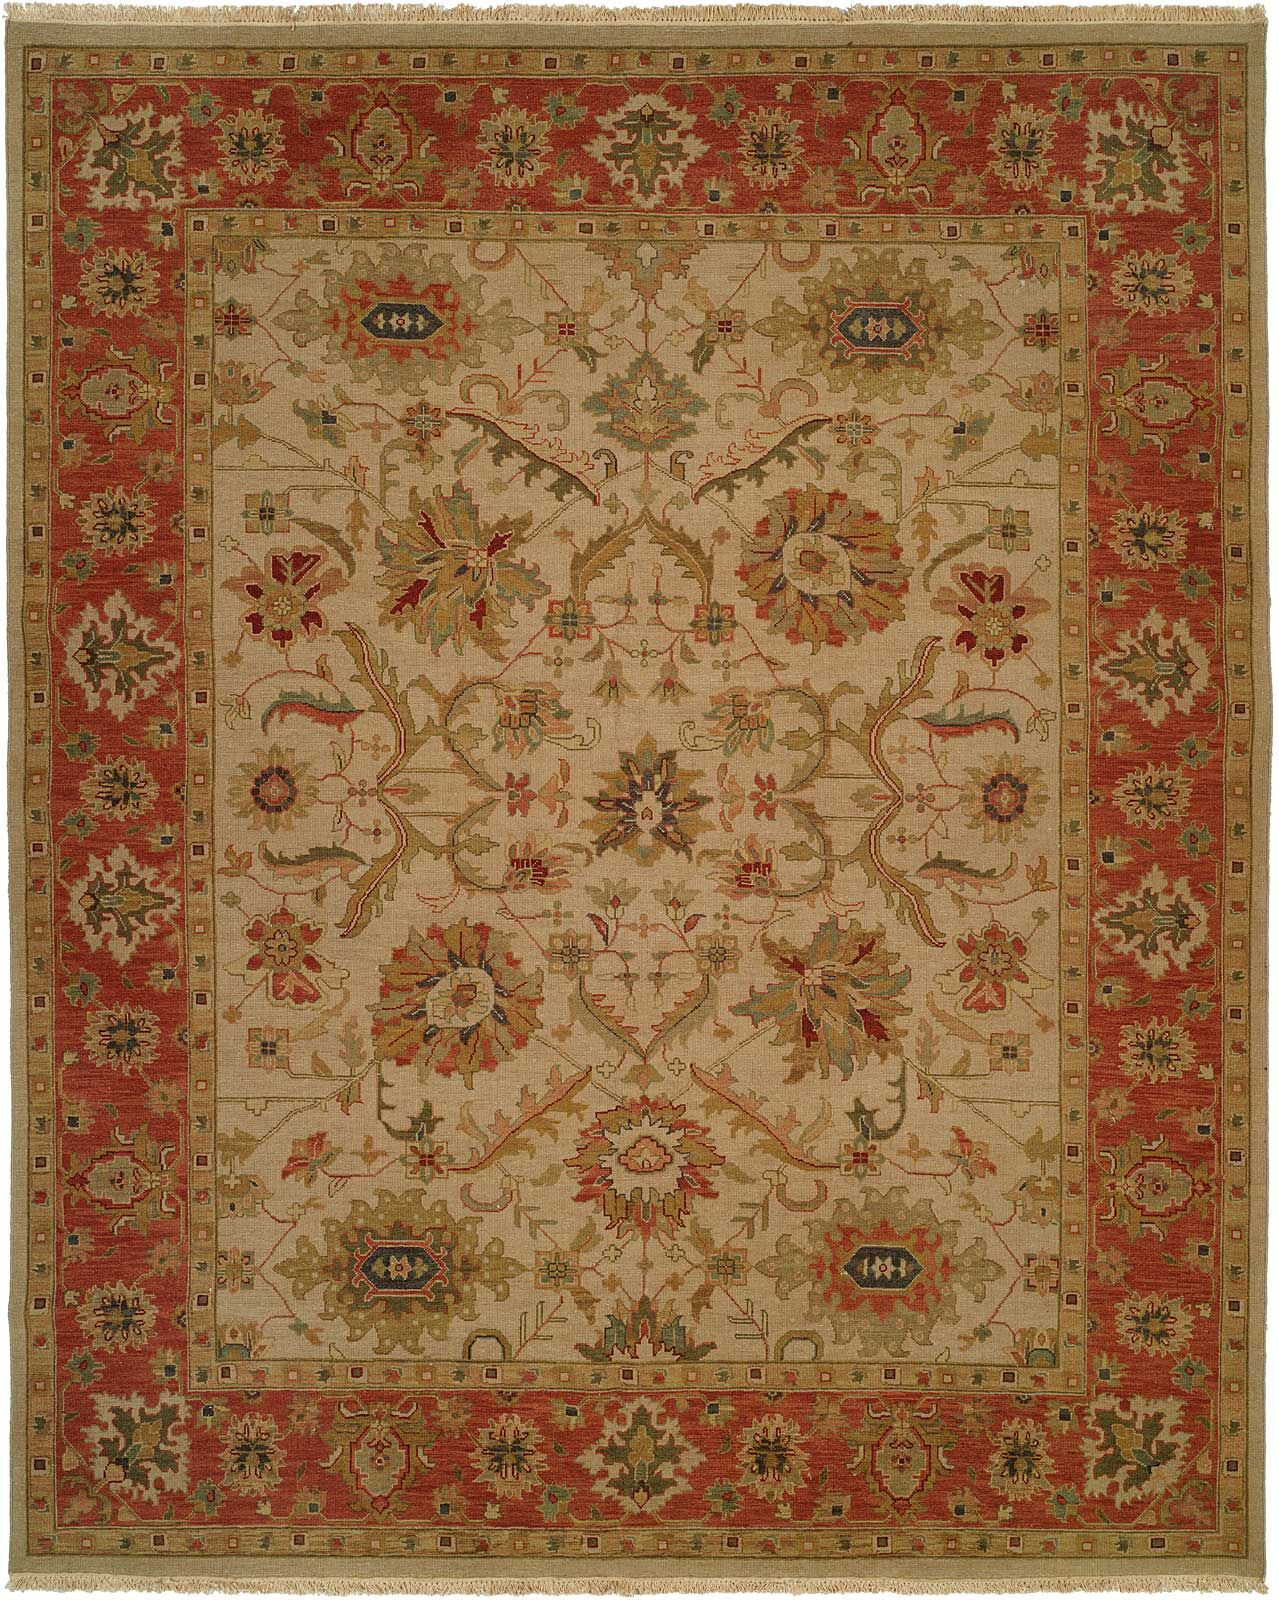 Kamel Hand-Woven Beige/Red Area Rug Rug Size: Rectangle 6' x 9'